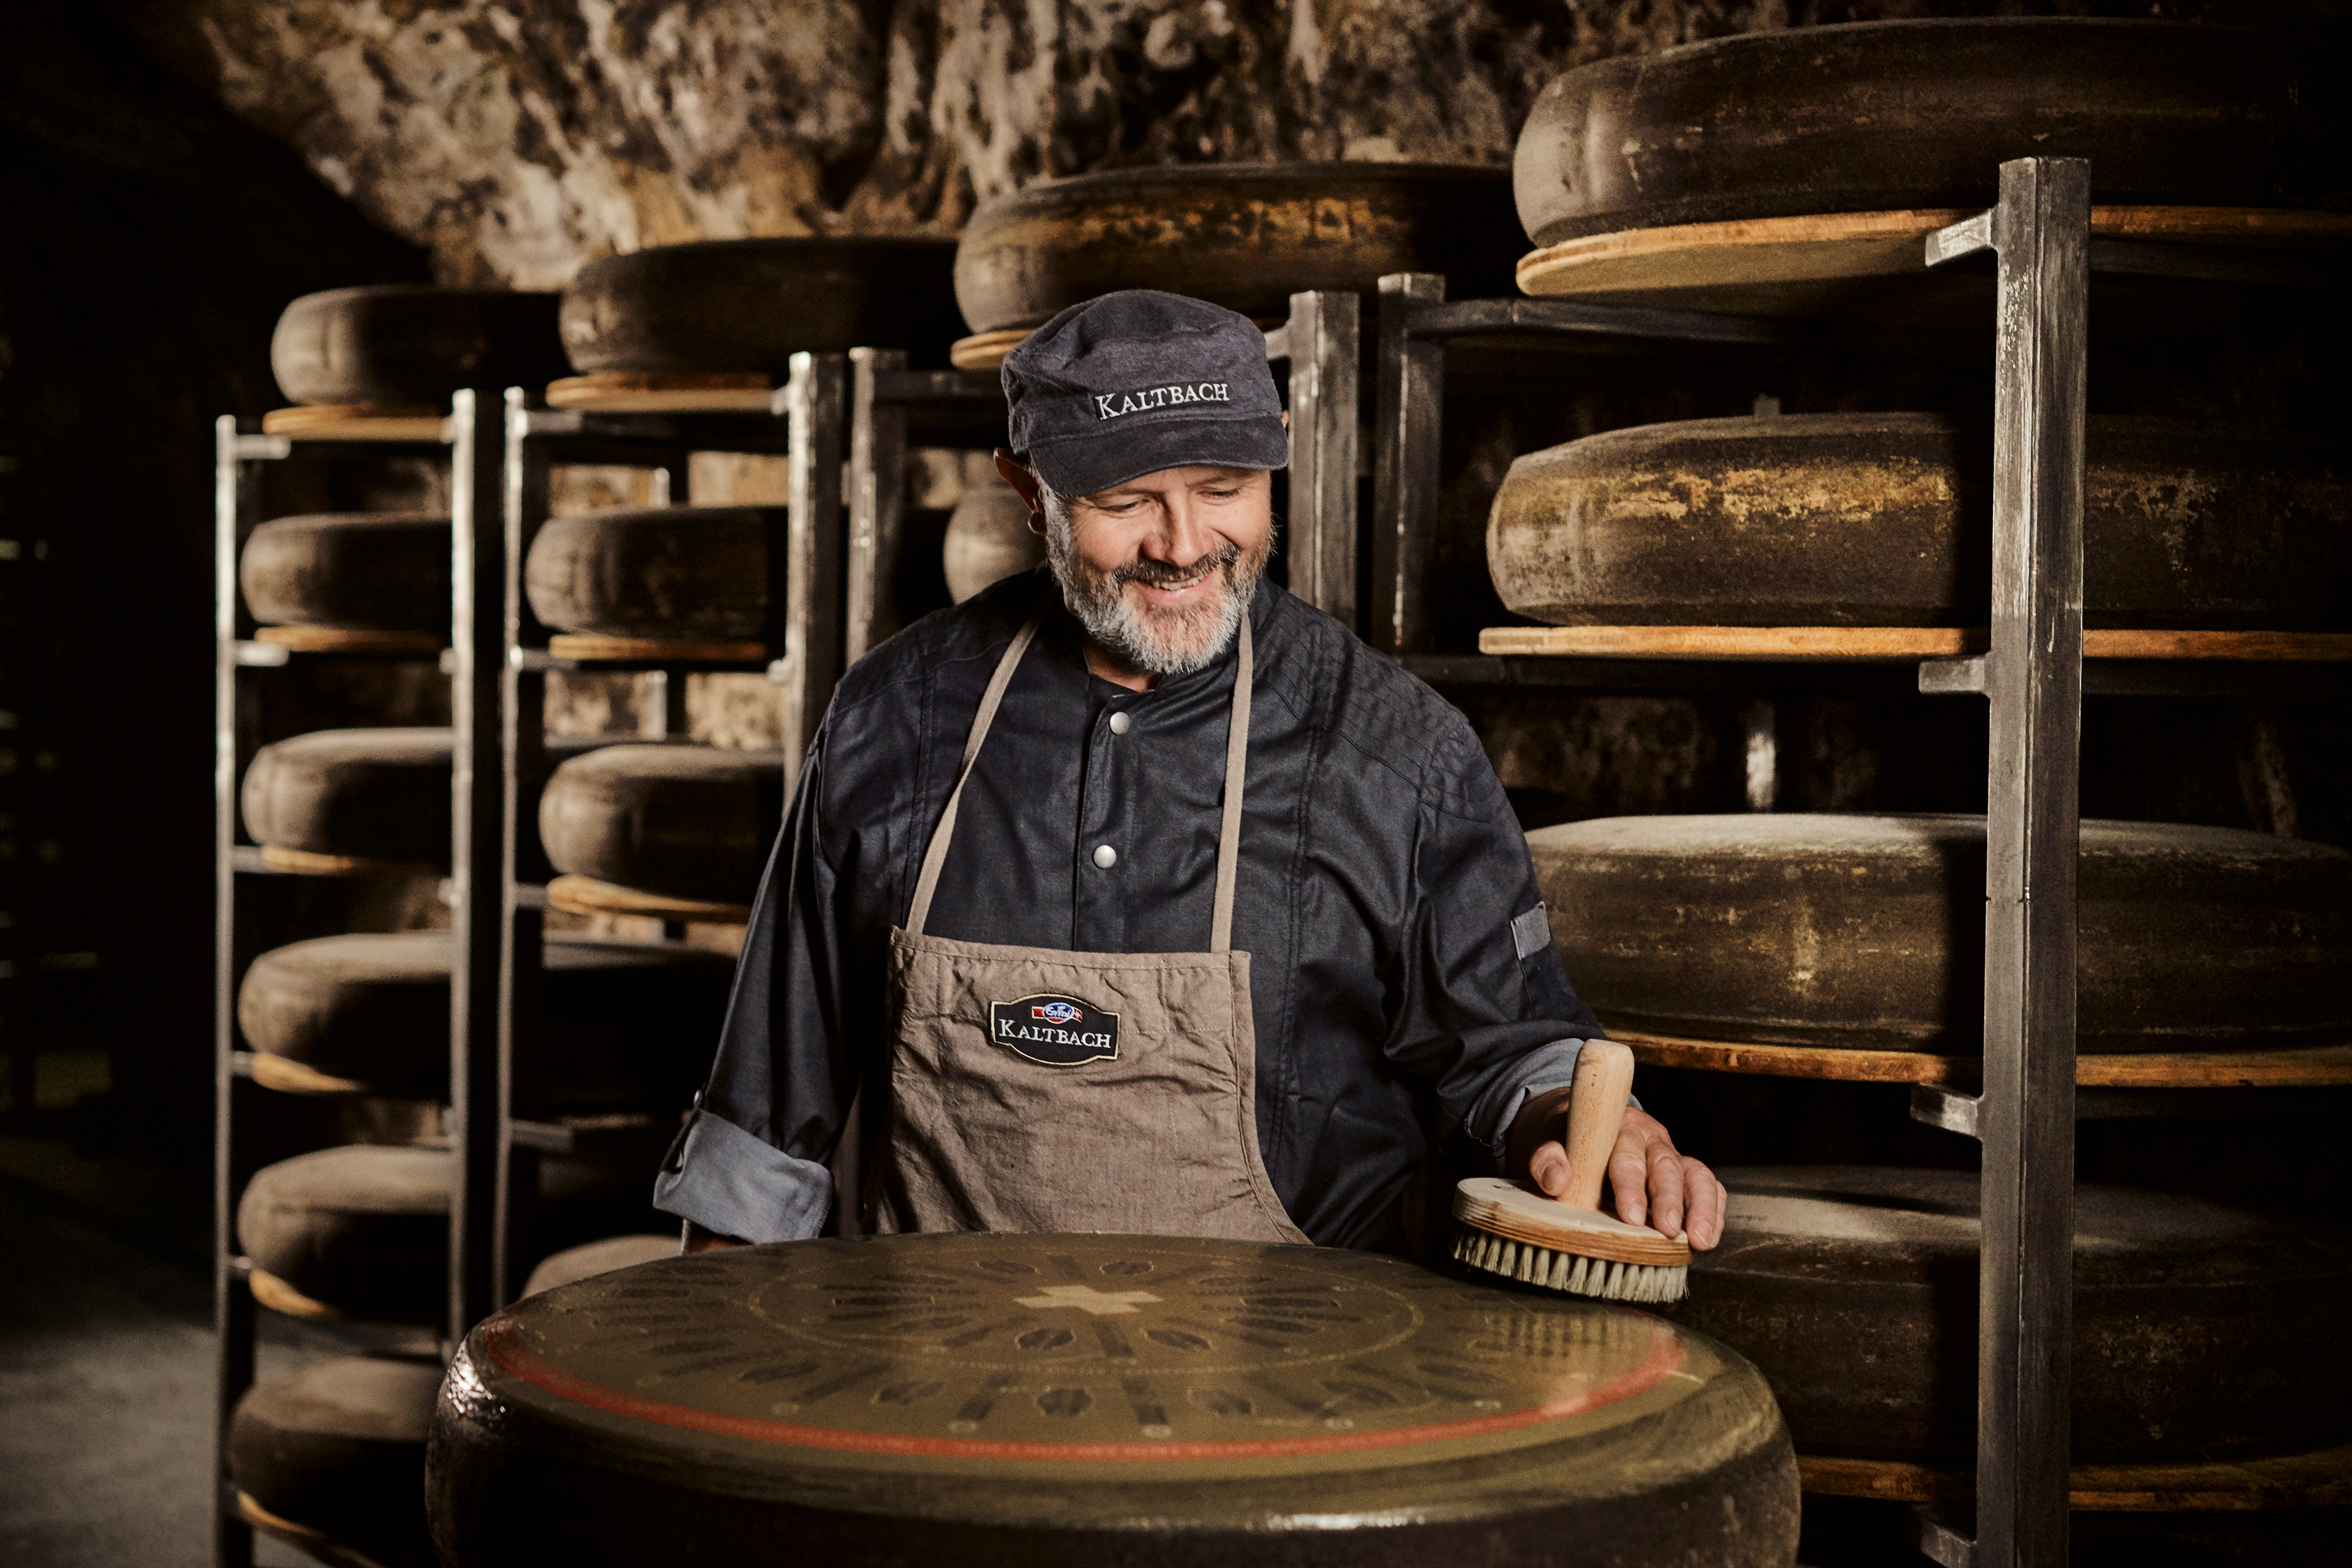 Fromages suisses - Fromagerie insolite - Grotte Kaltbach